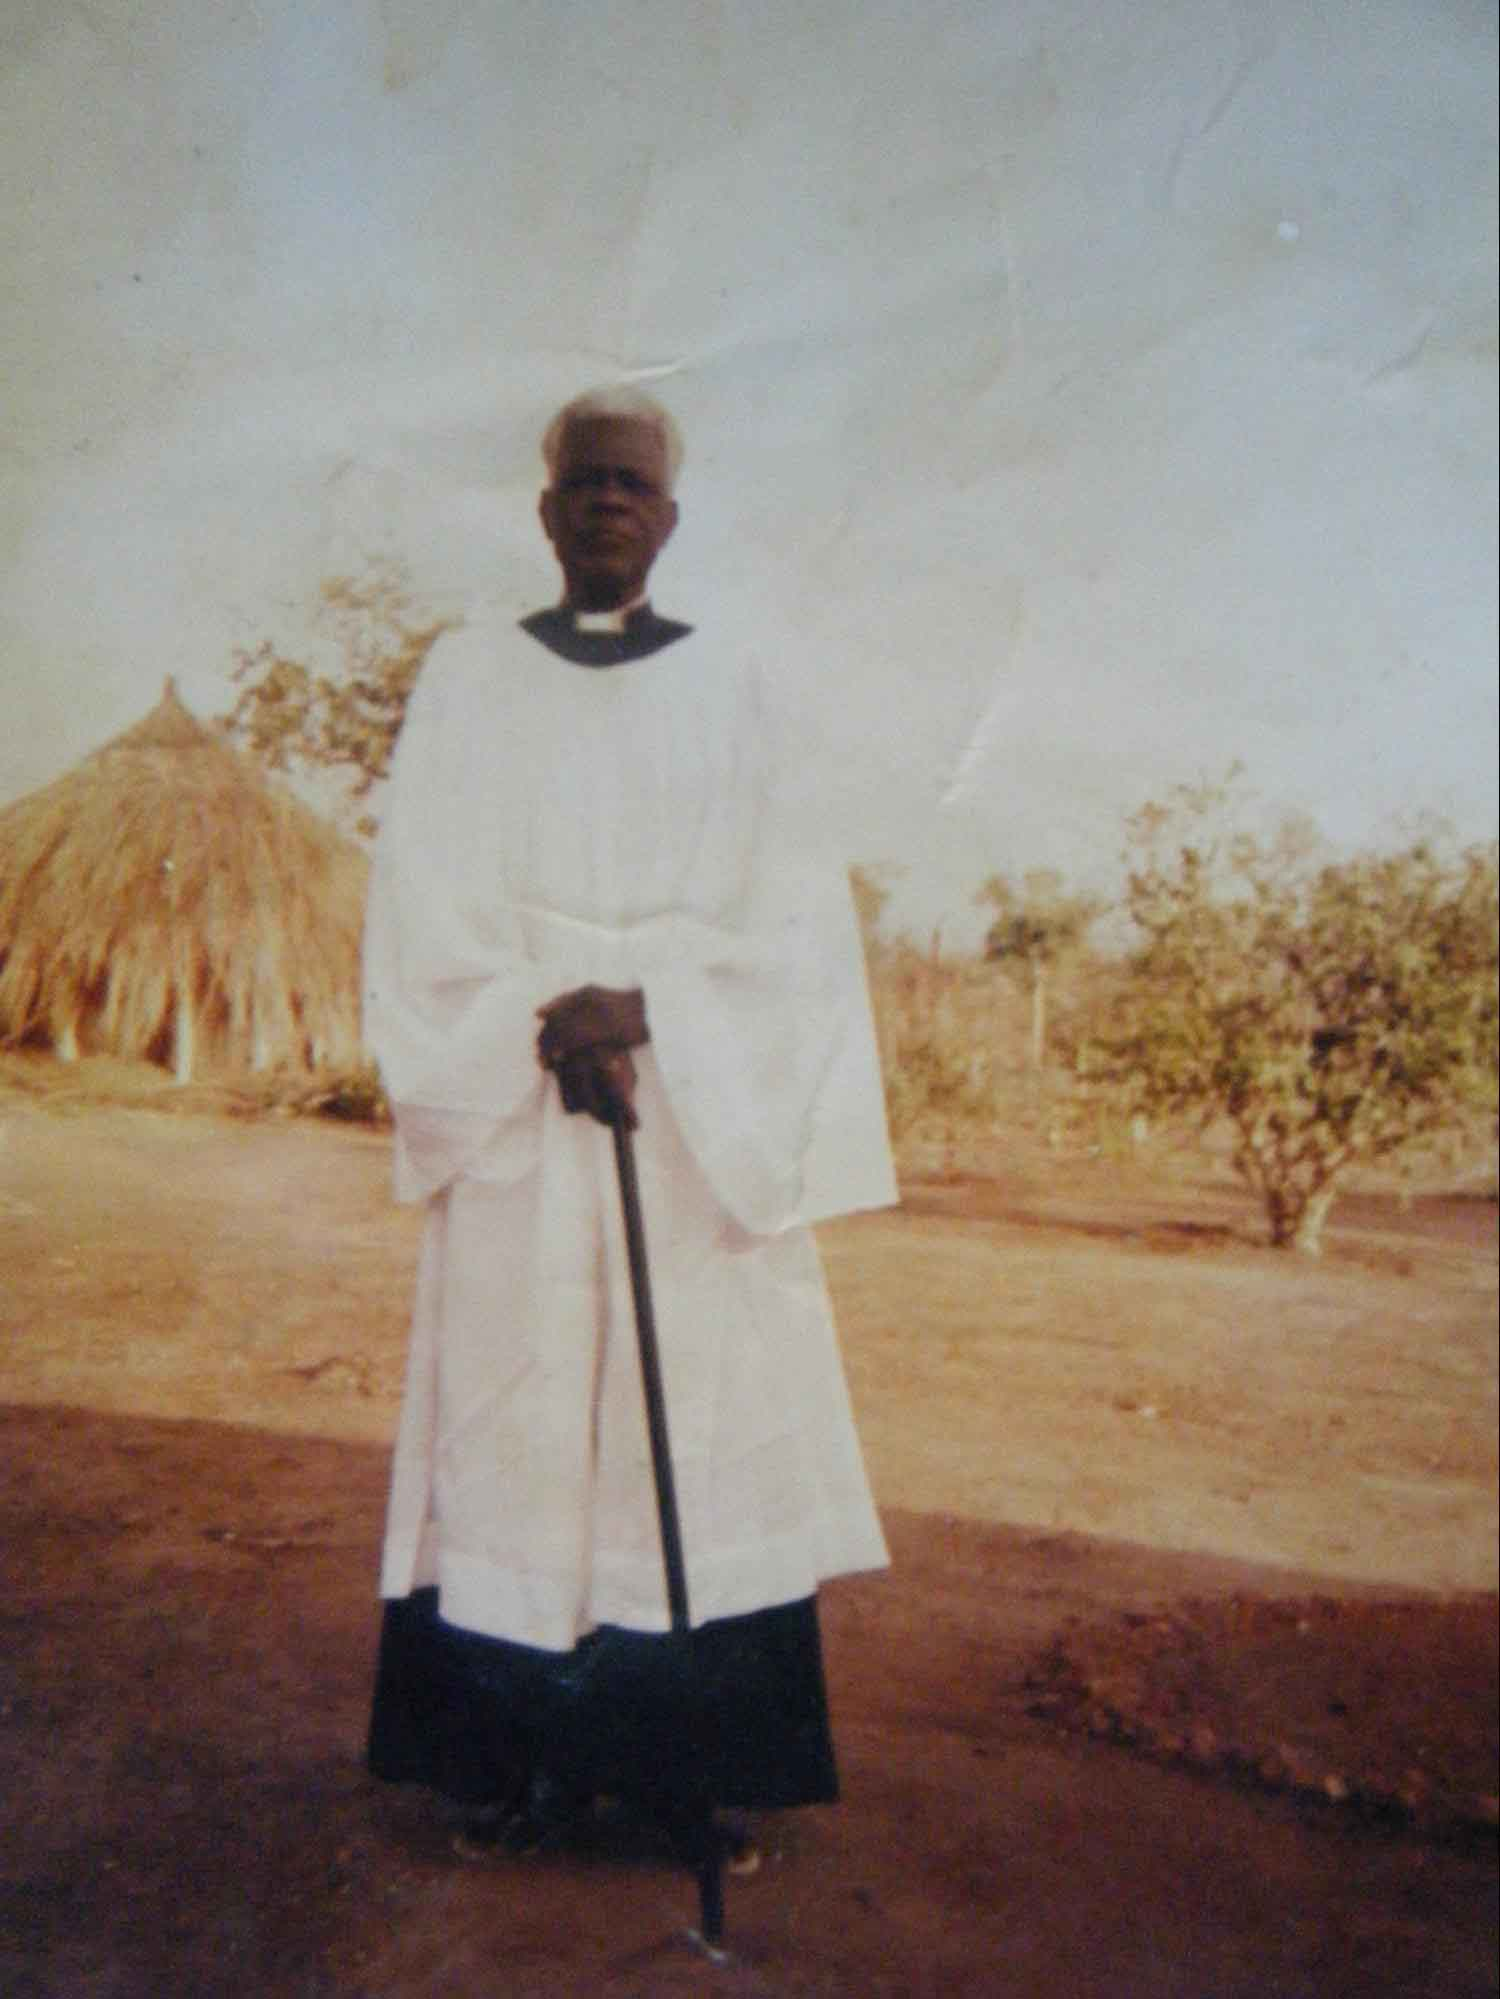 The late Rev. Canon David Gale, who initiated the Keliko Scripture translation